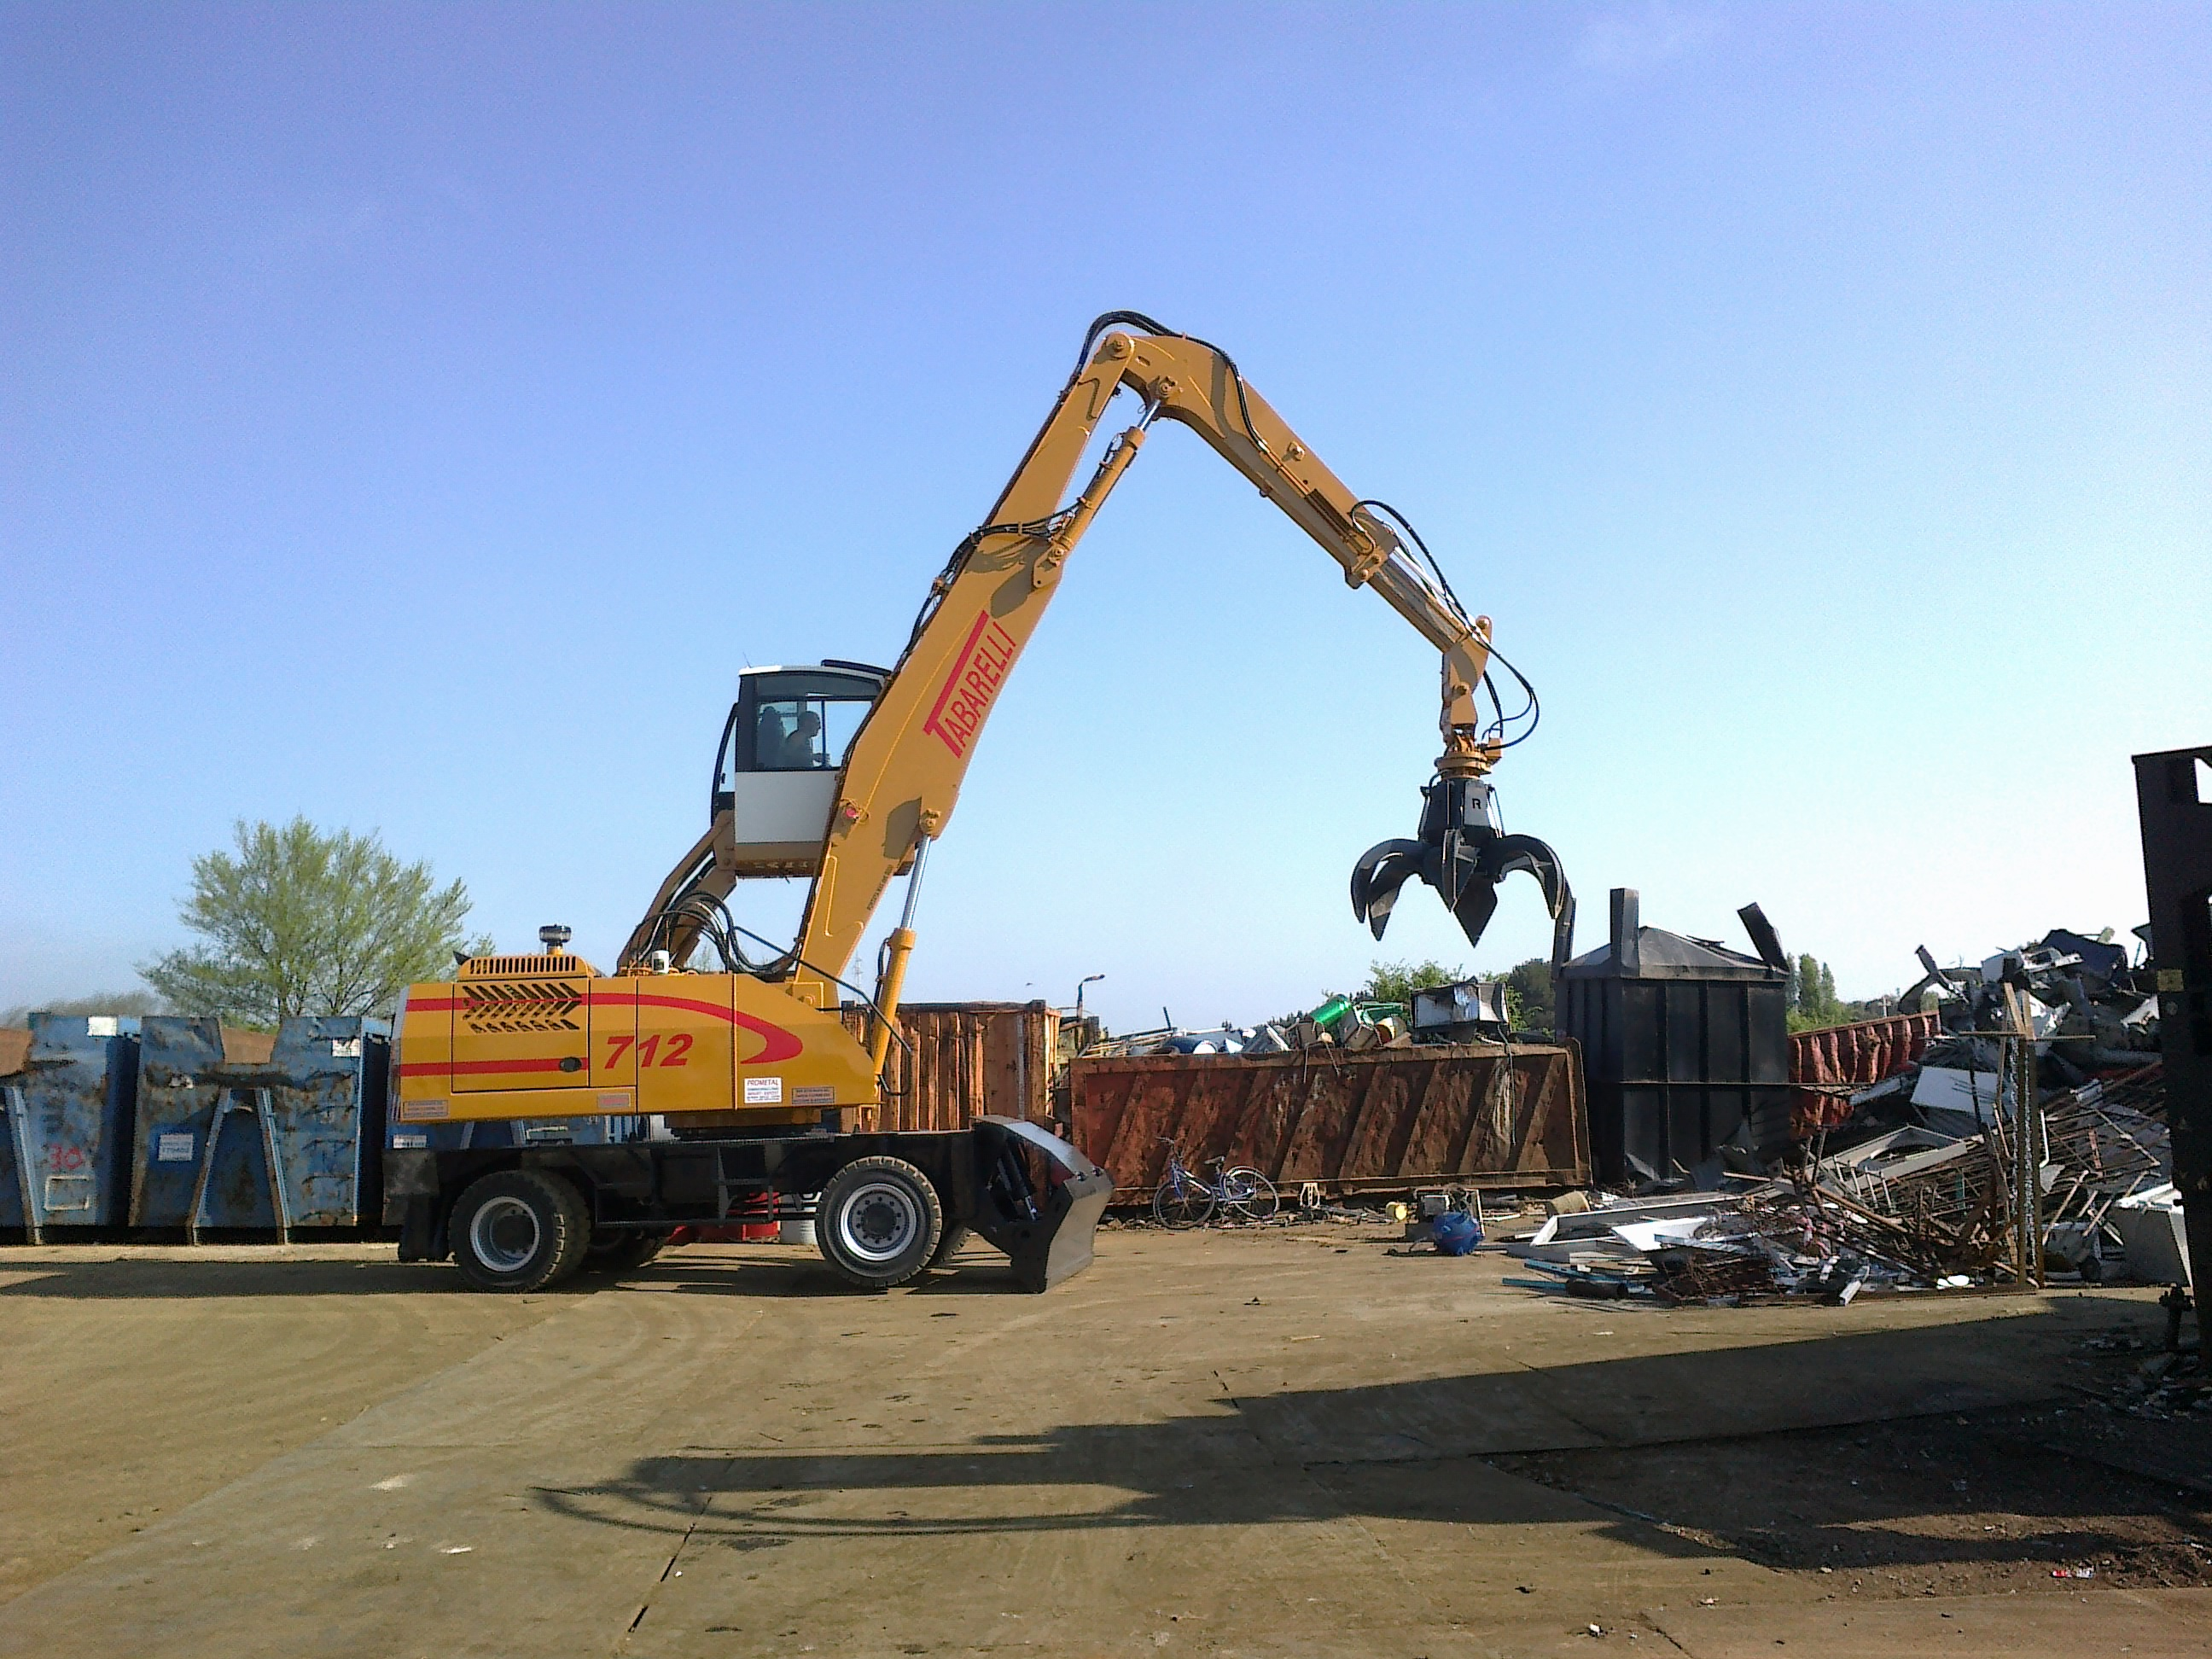 Tabarelli material handler T712 for scrap and waste loader crane